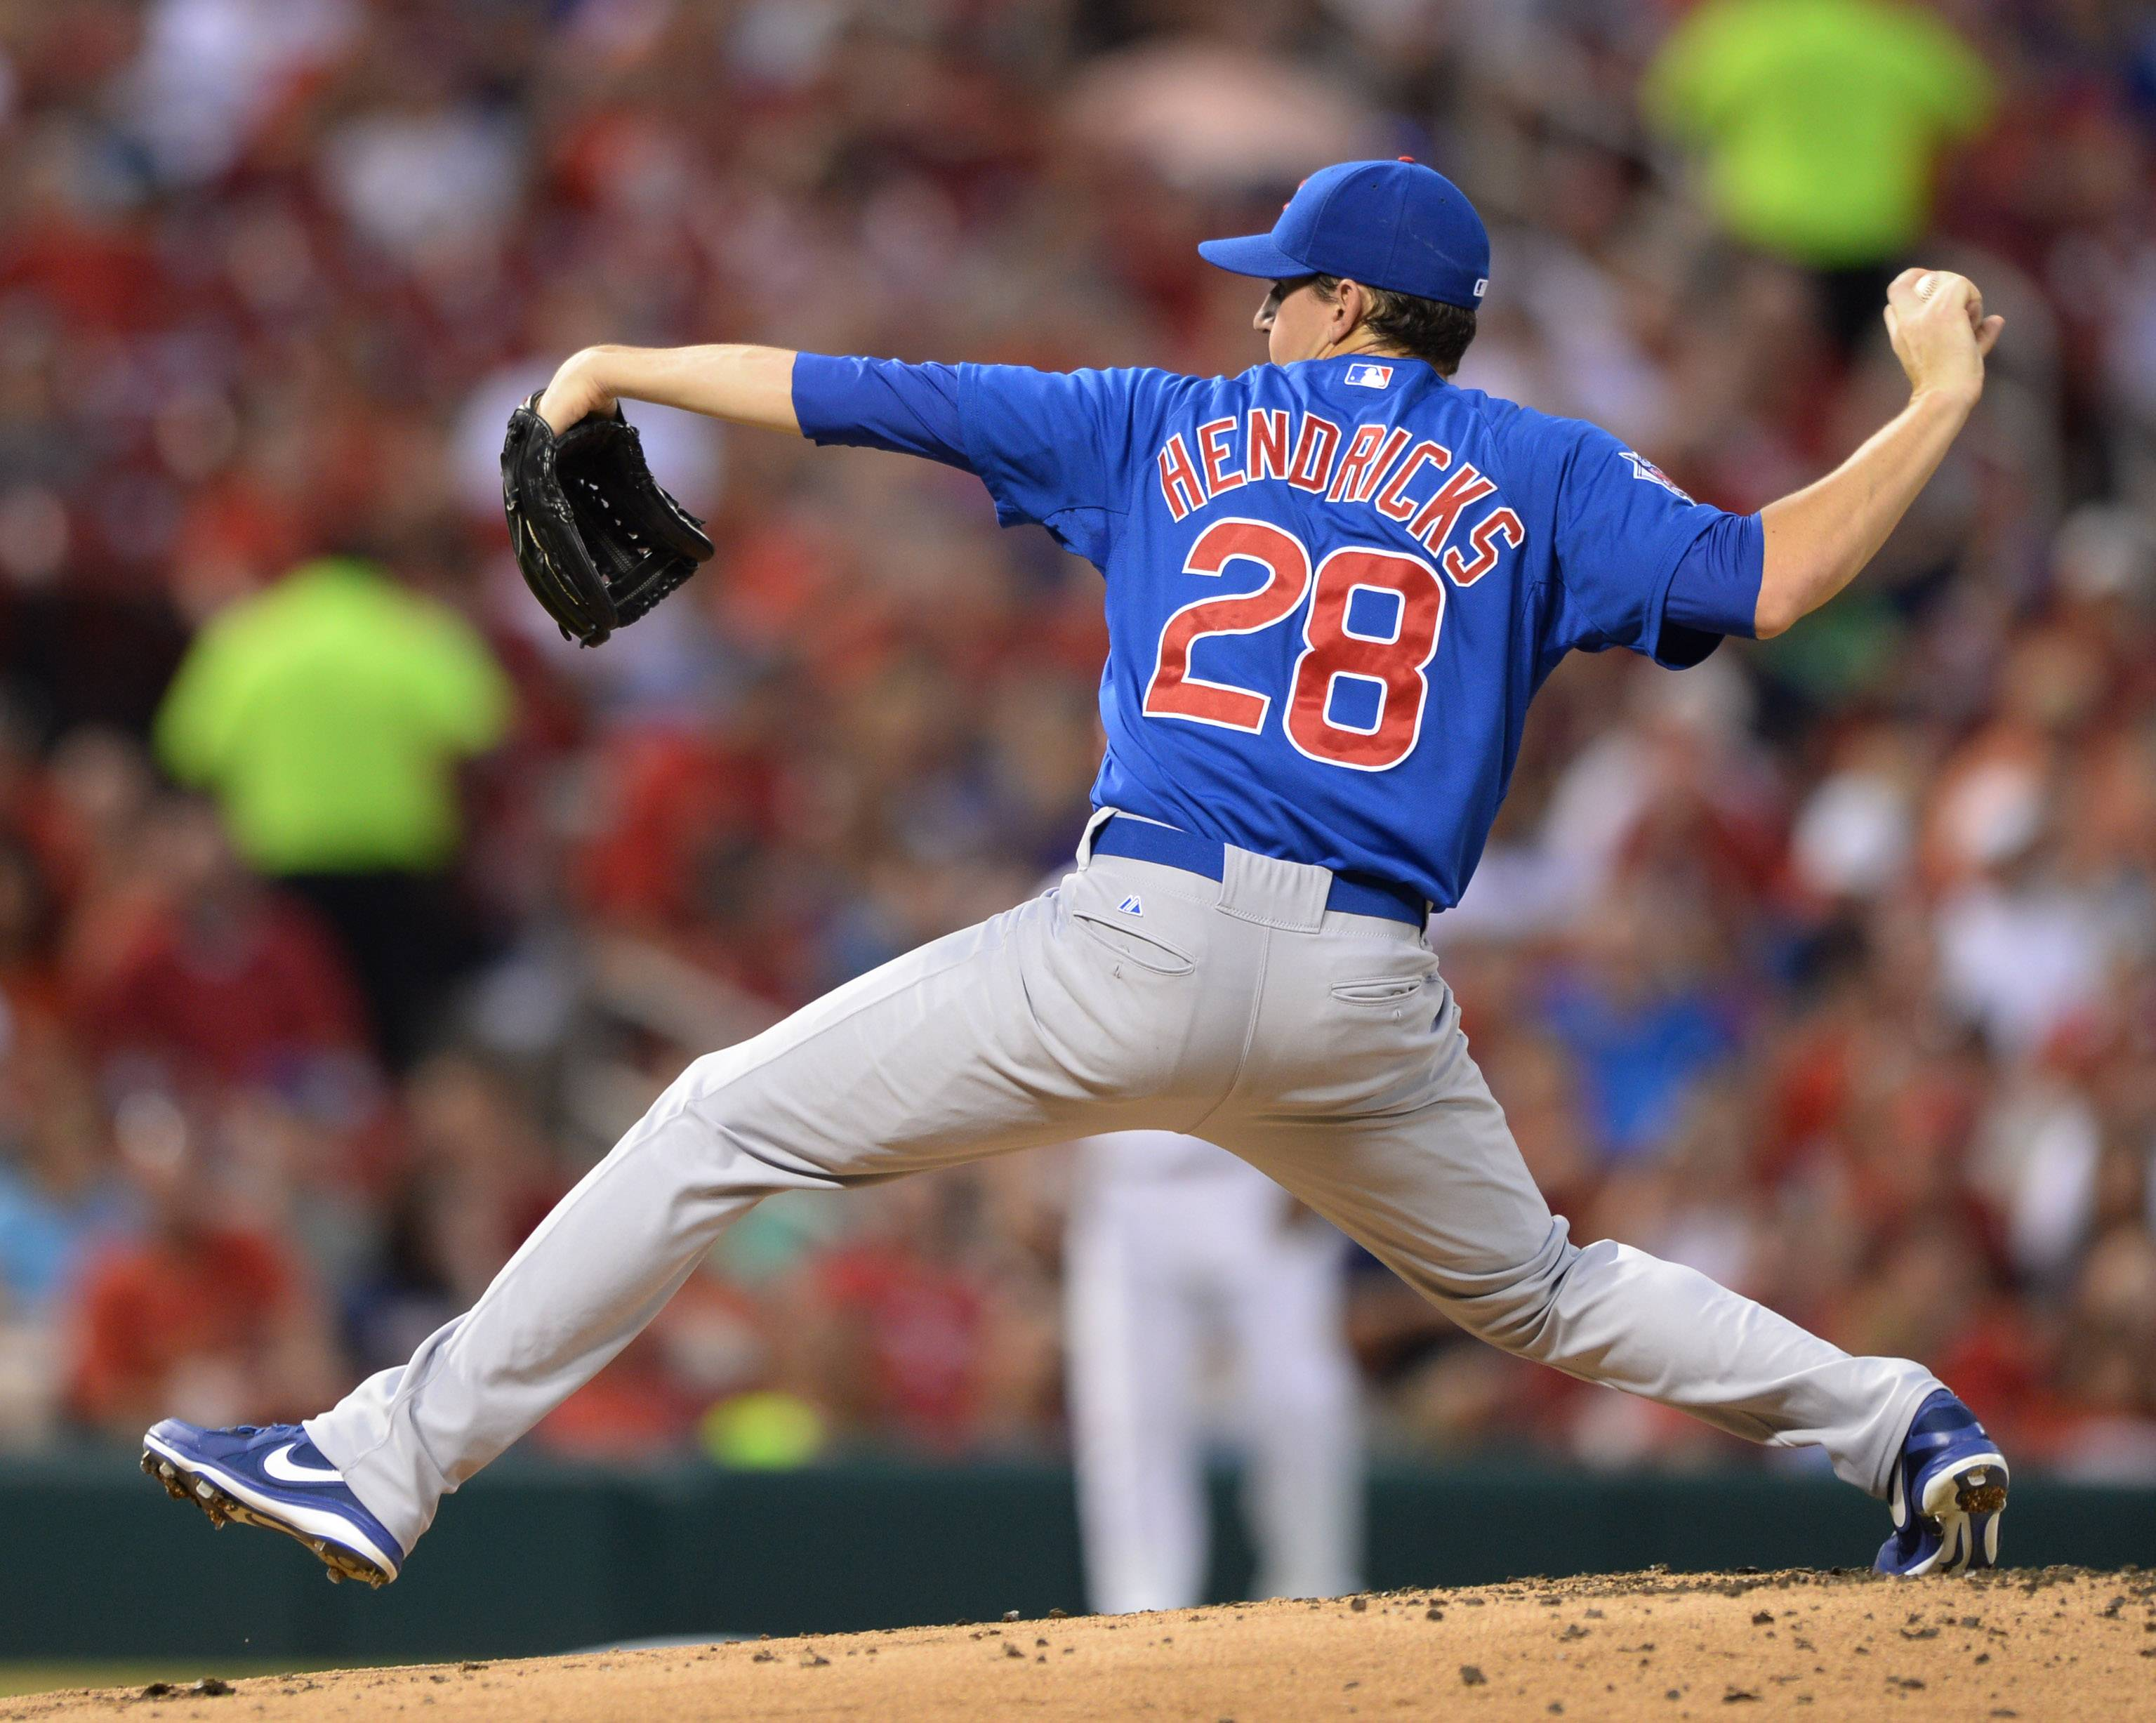 Cubs starting pitcher Kyle Hendricks has a been a revelation since joining the rotation following the trade of Jeff Samardzija and Jason Hammel to Oakland.